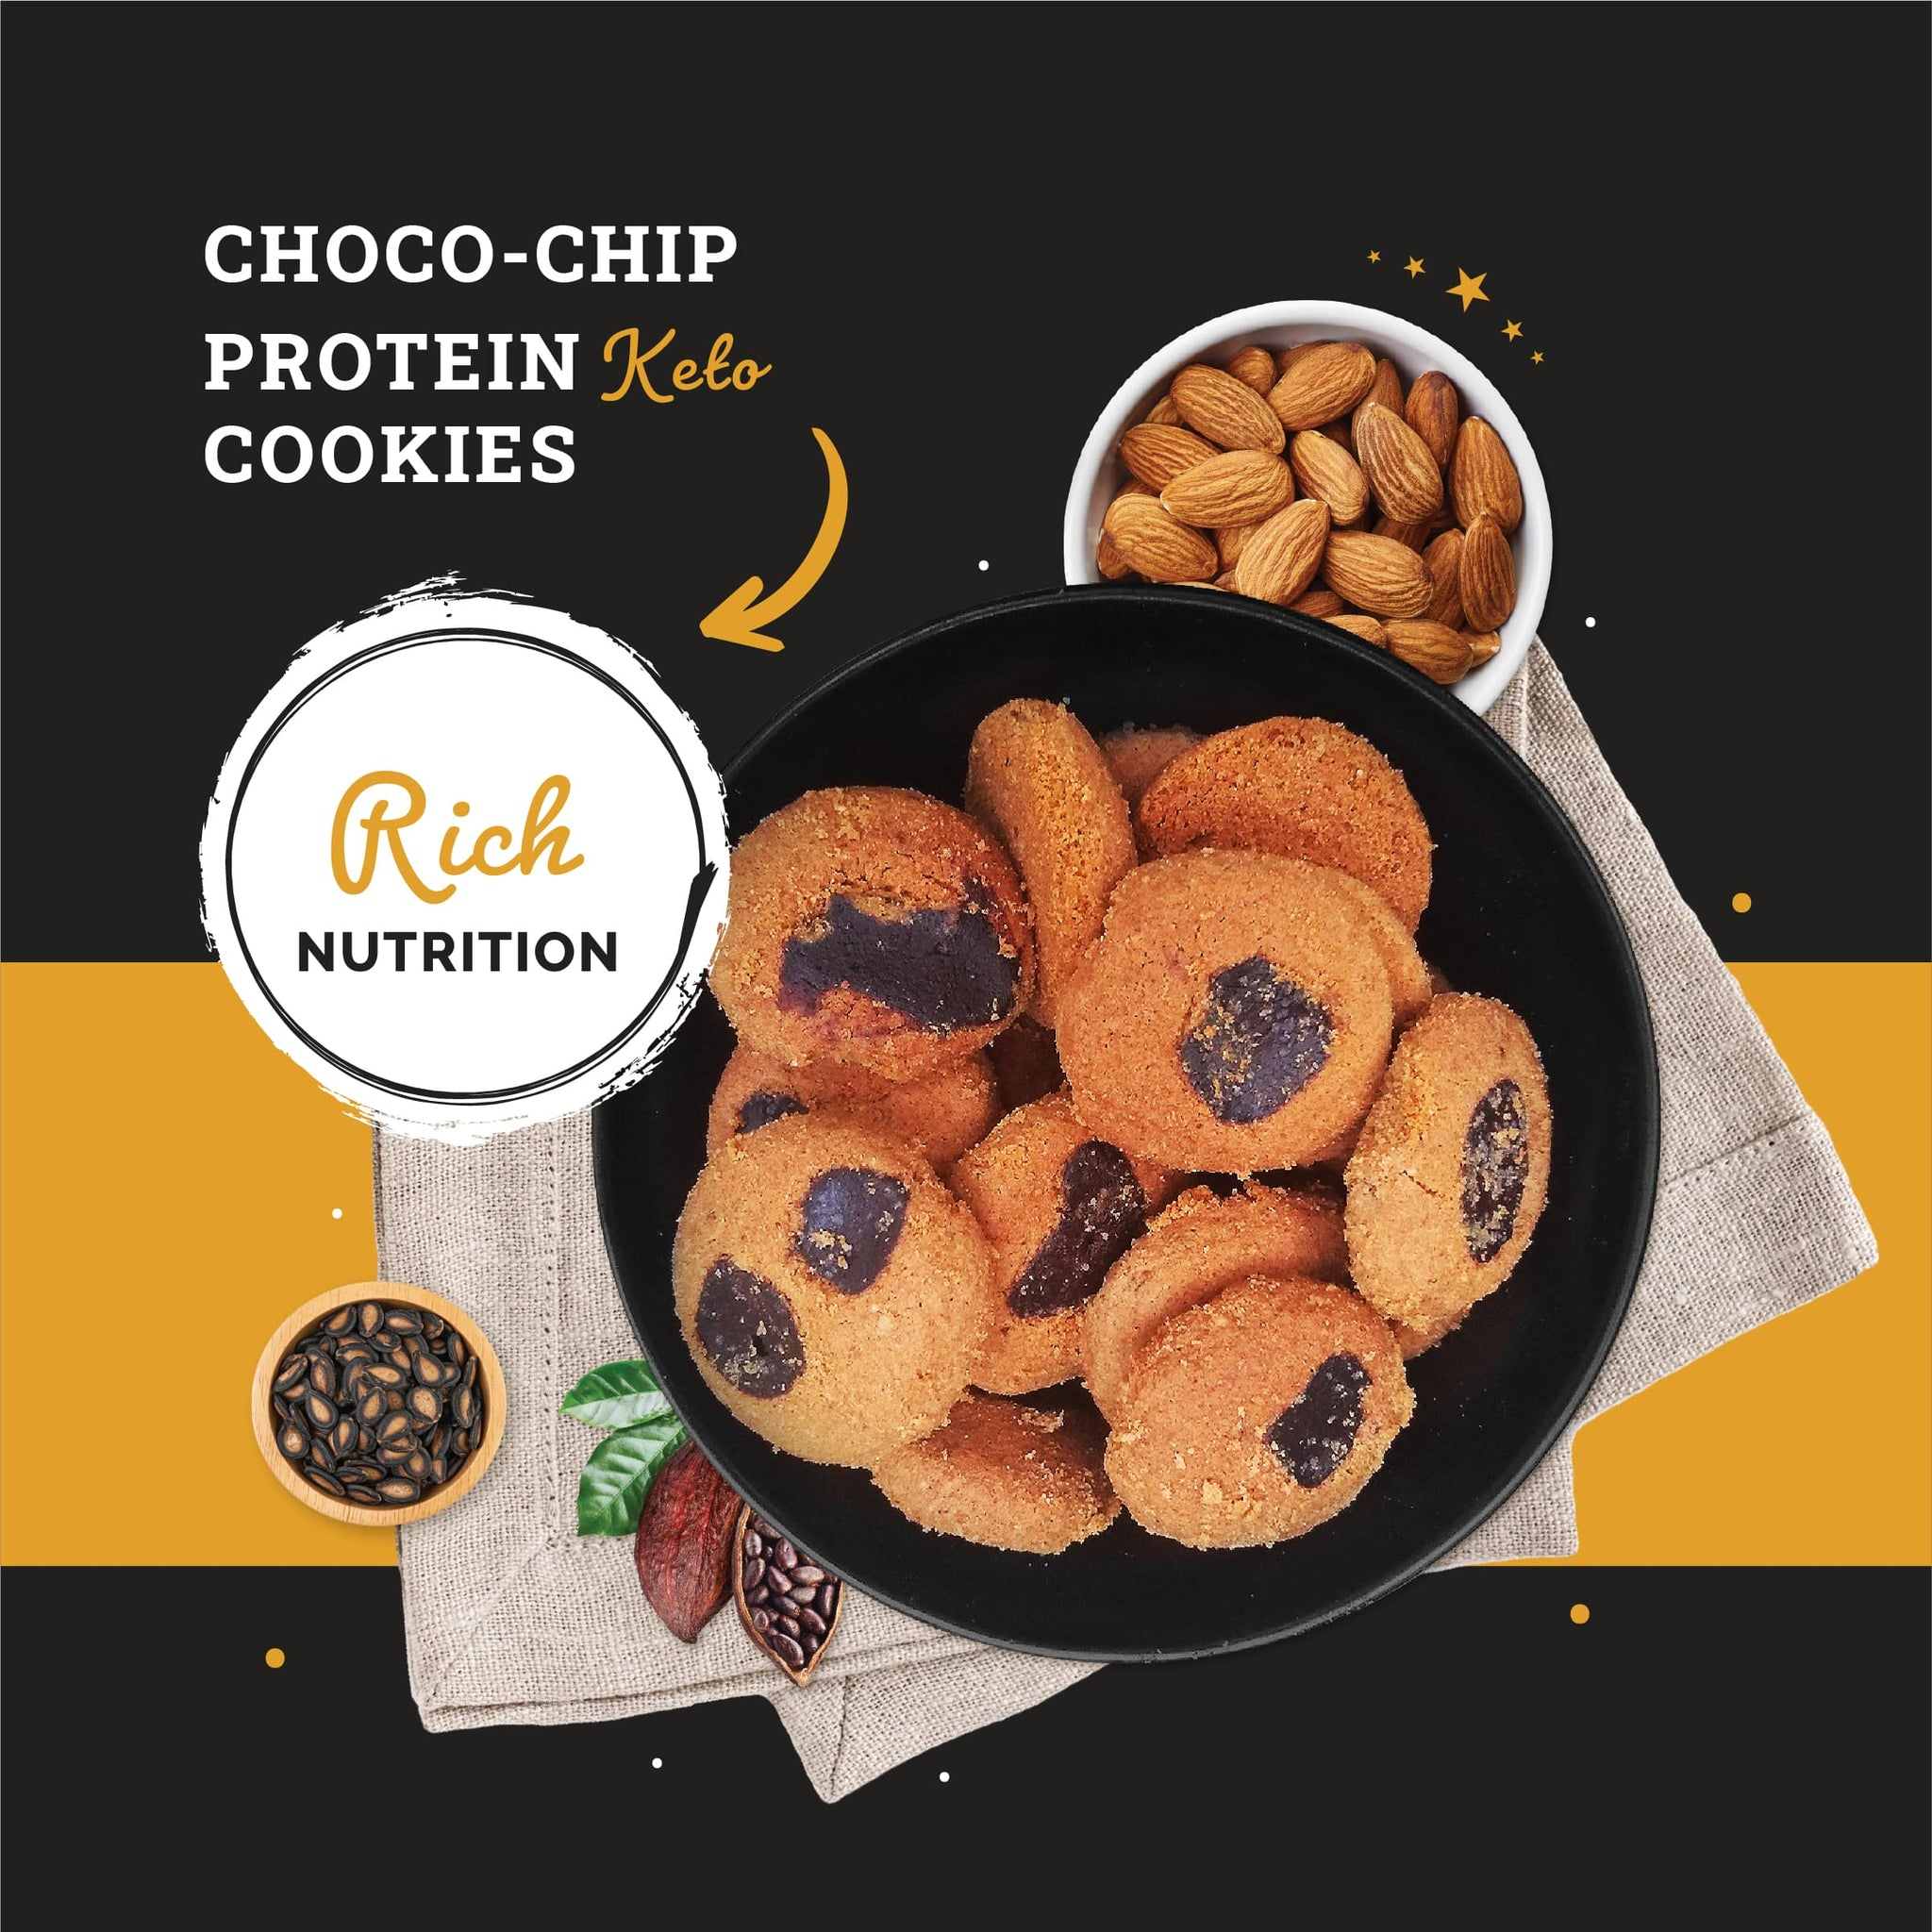 Ketofy Choco-Chip Protein Cookies | Ultra Low Carb